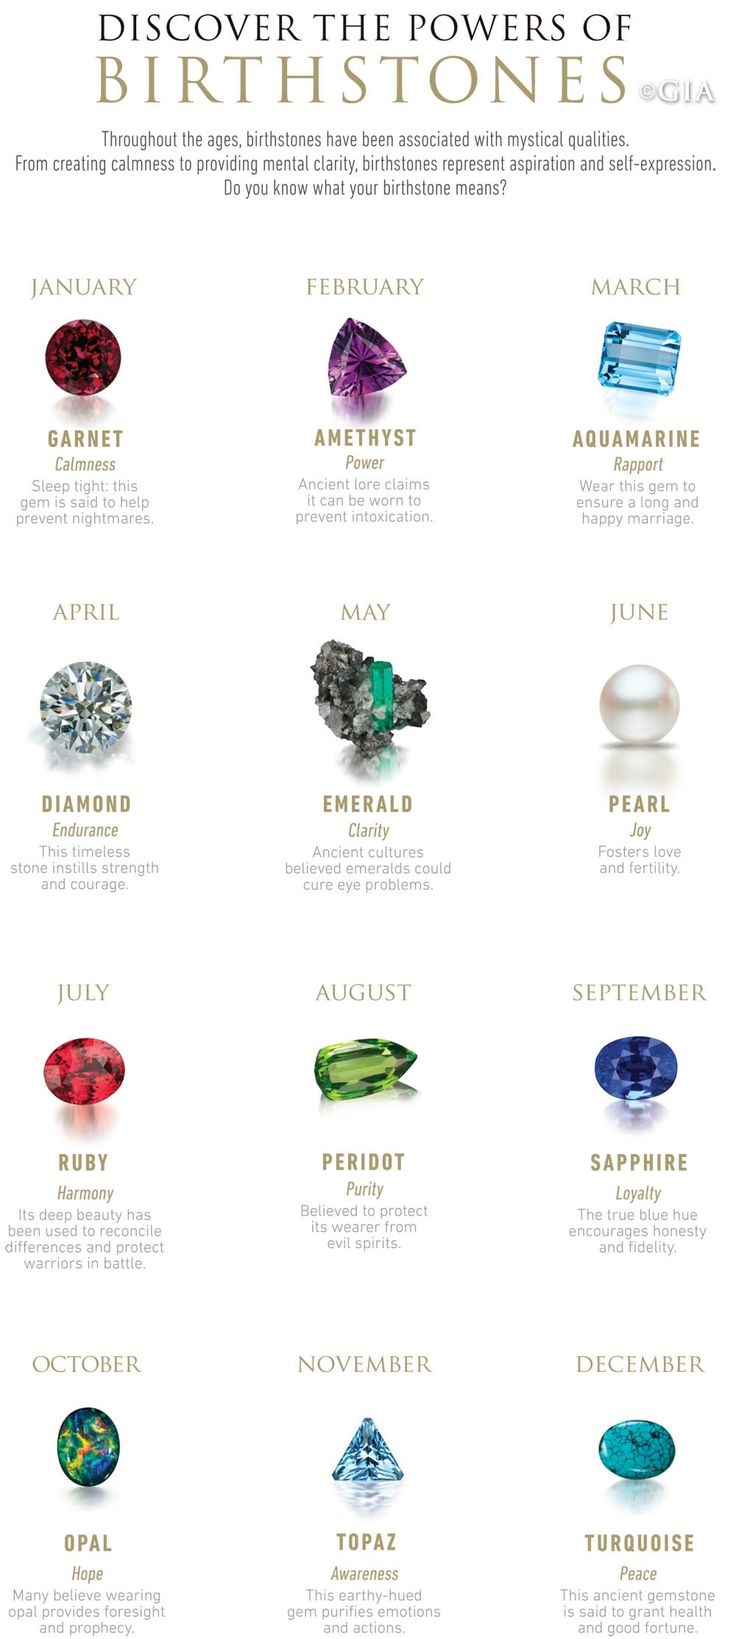 Discover the Powers of Your #Birthstone. #Gemstones. Birthstones are associated with mystical qualities, do you know what your birthstone means?